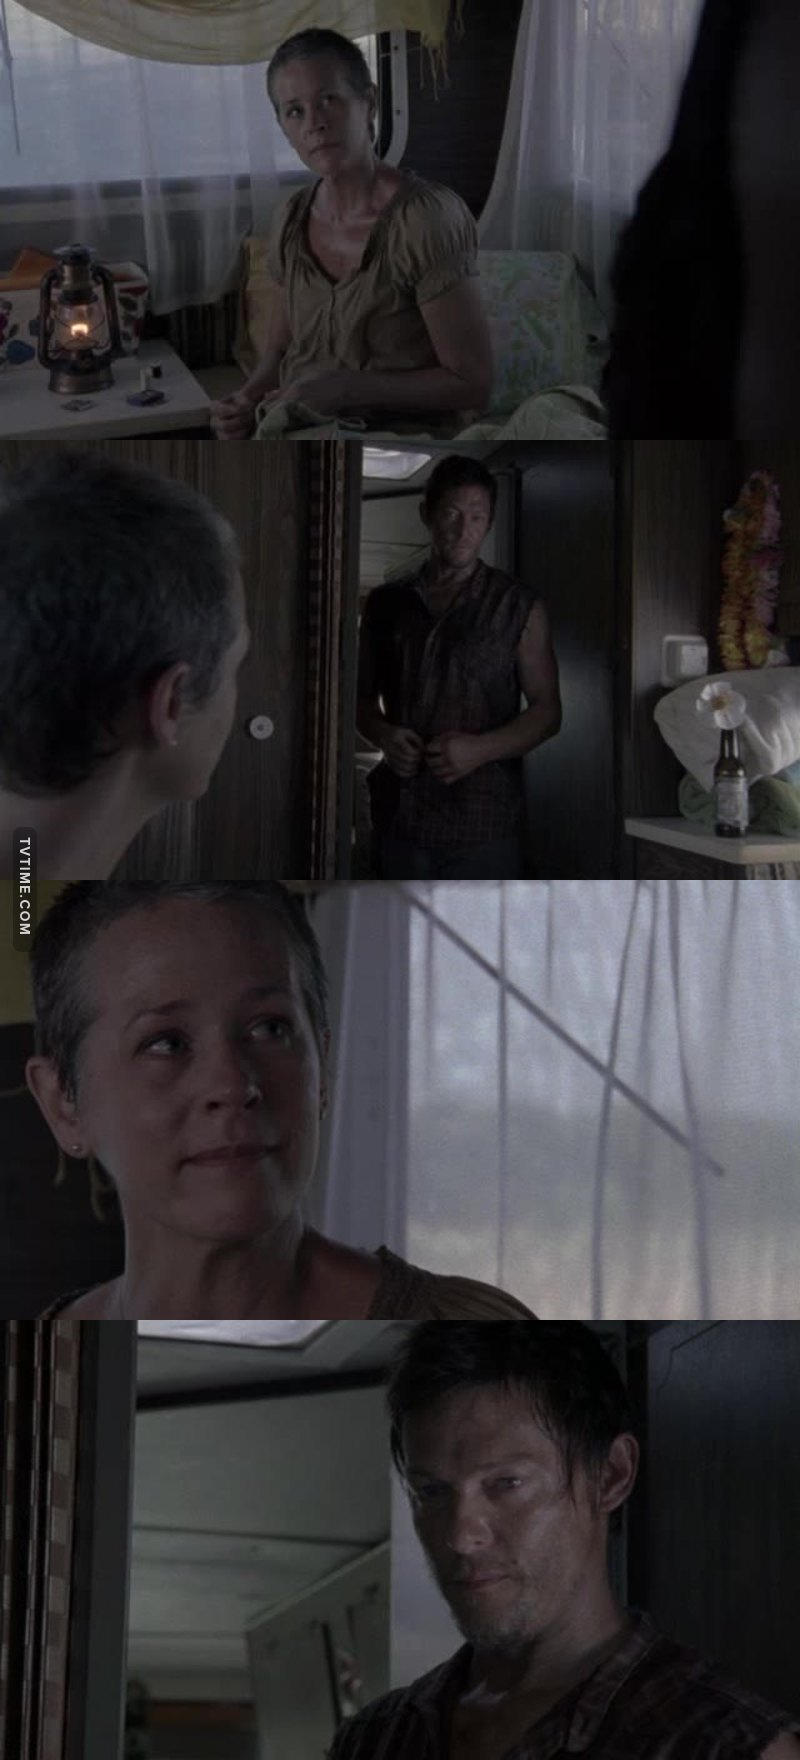 Carol: A flower? Daryl: It's a Cherokee rose. The story is that when american soldiers were moving Indians off their land on the trail of tears the Cherokee mothers were grieving and crying so much 'cause they were losing their little ones along the way from exposure and disease and starvation. A lot of them just disappeared. So the elders, they said a prayer; asked for a sign to uplift the mothers' spirits, give them strength and hope. The next day this rose started to grow right where the mothers' tears fell. I'm not fool enough to think there's any flowers blooming for my brother. But I believe this one bloomed for your little girl.